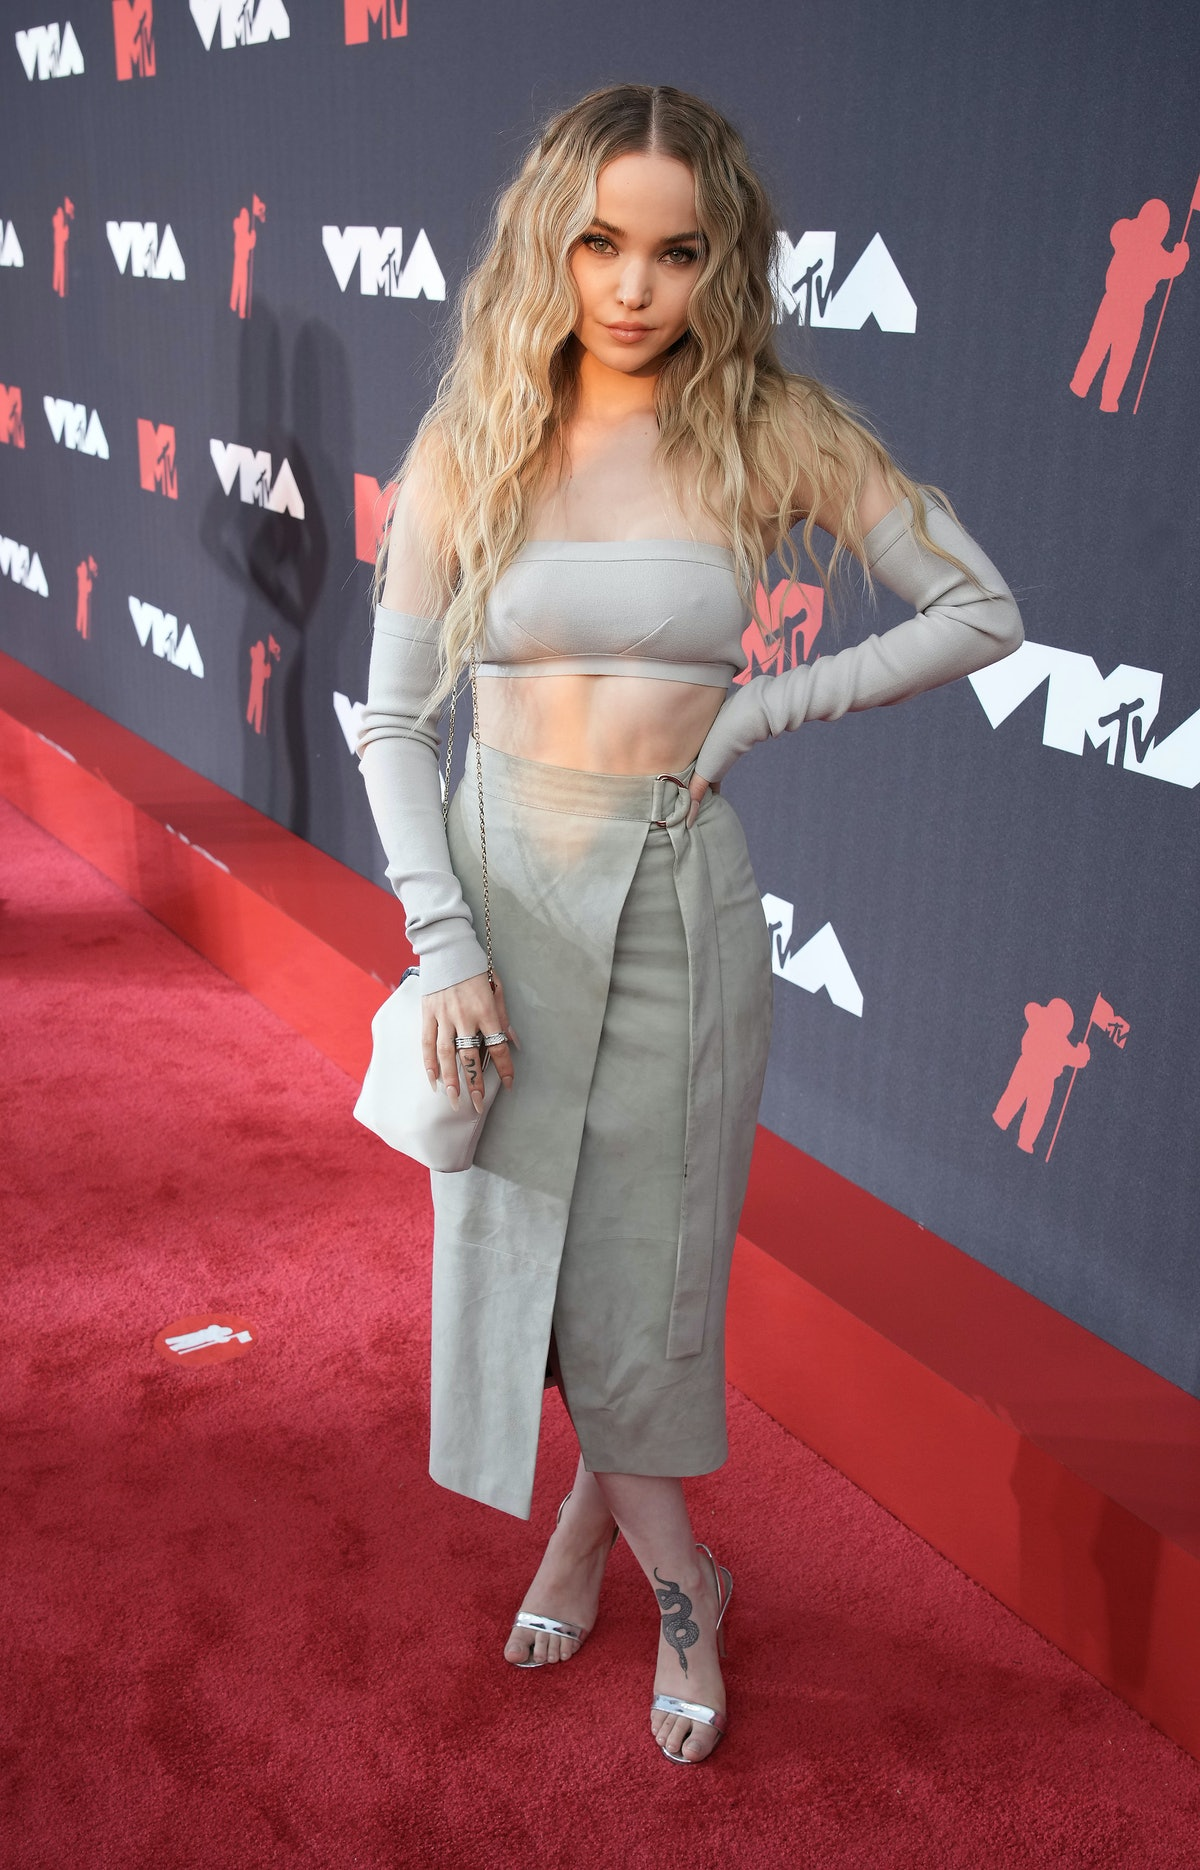 Dove Cameron attends the 2021 MTV Video Music Awards at Barclays Center on September 12, 2021 in the...